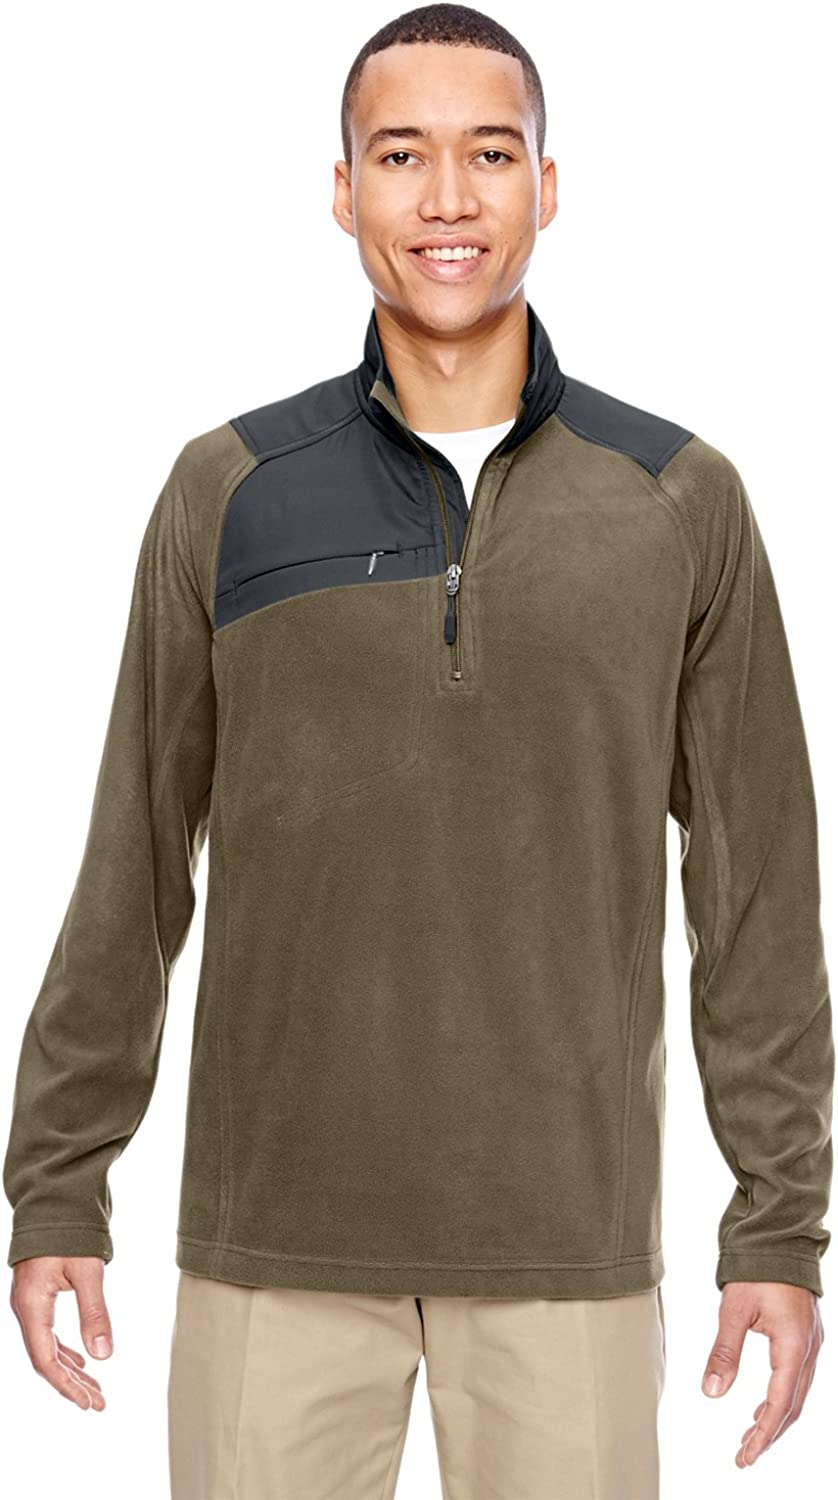 North End Mens Excursion Trail Fabric-Block Fleece Zip M -DK OAKMOSS 4 88217